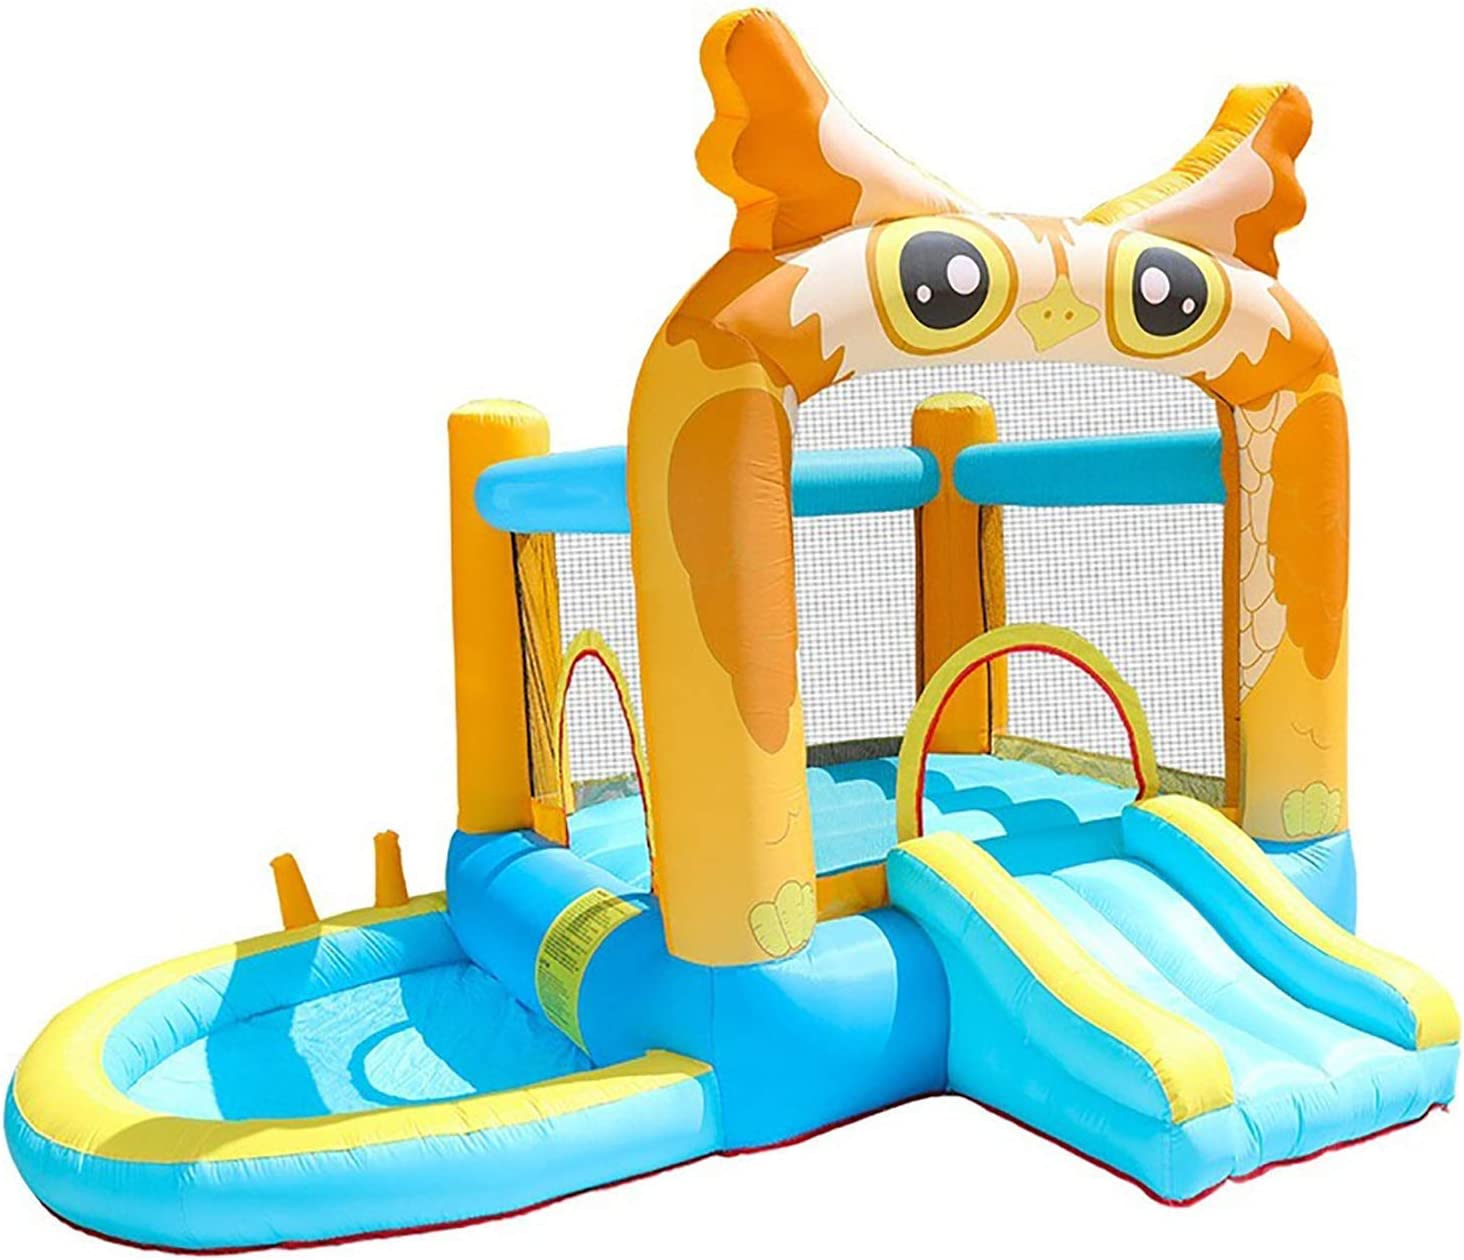 LGLE Inflatable Water Slide Ranking TOP5 for Bouncer Bouncy Ca Kids Children Miami Mall